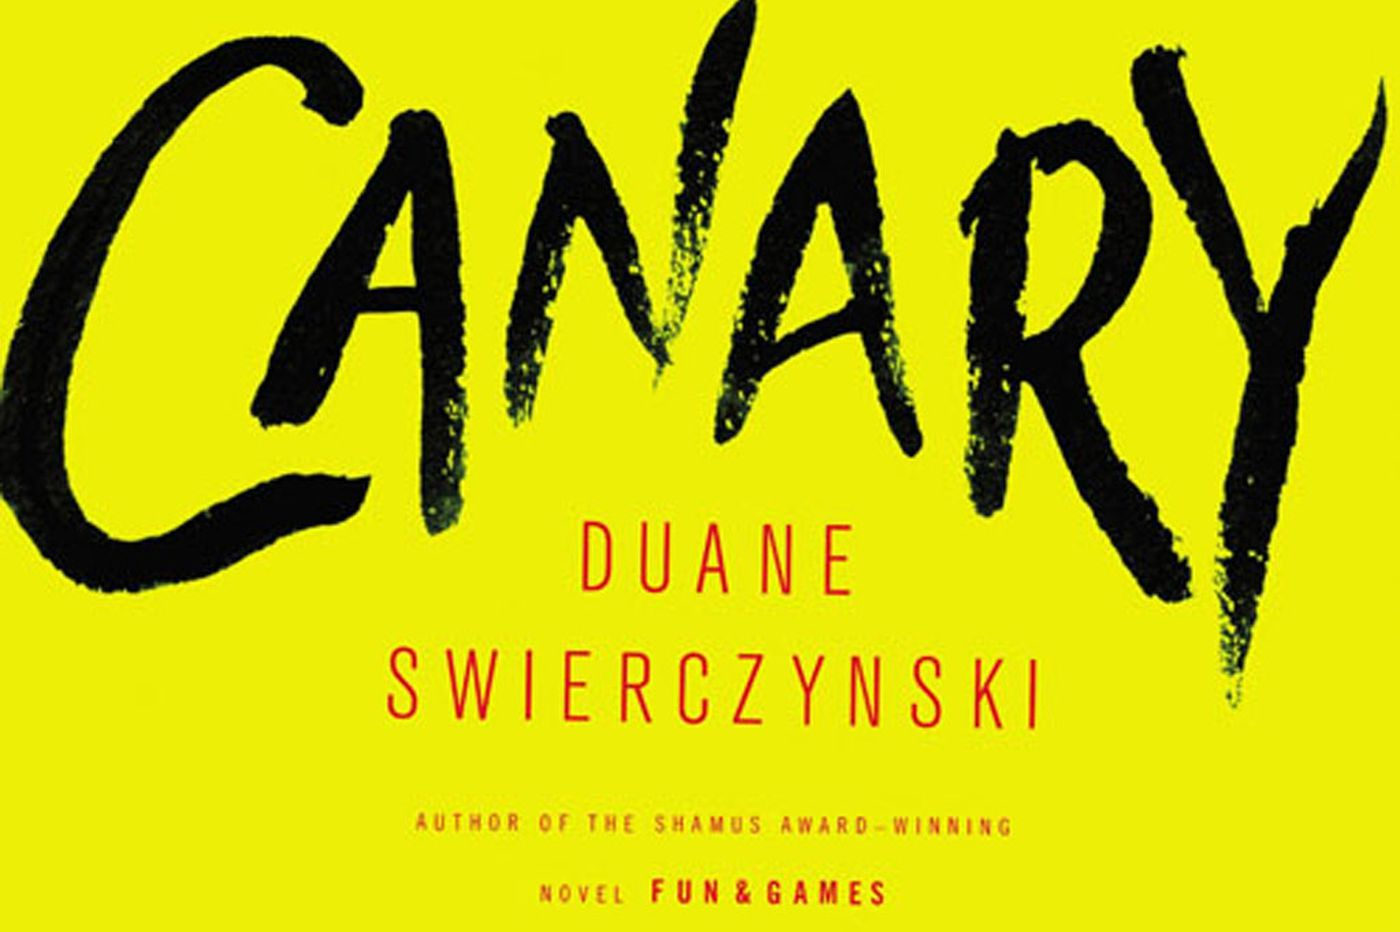 Duane Swierczysnki's 'Canary': Down Philly's mean Mafia streets an honors student must go